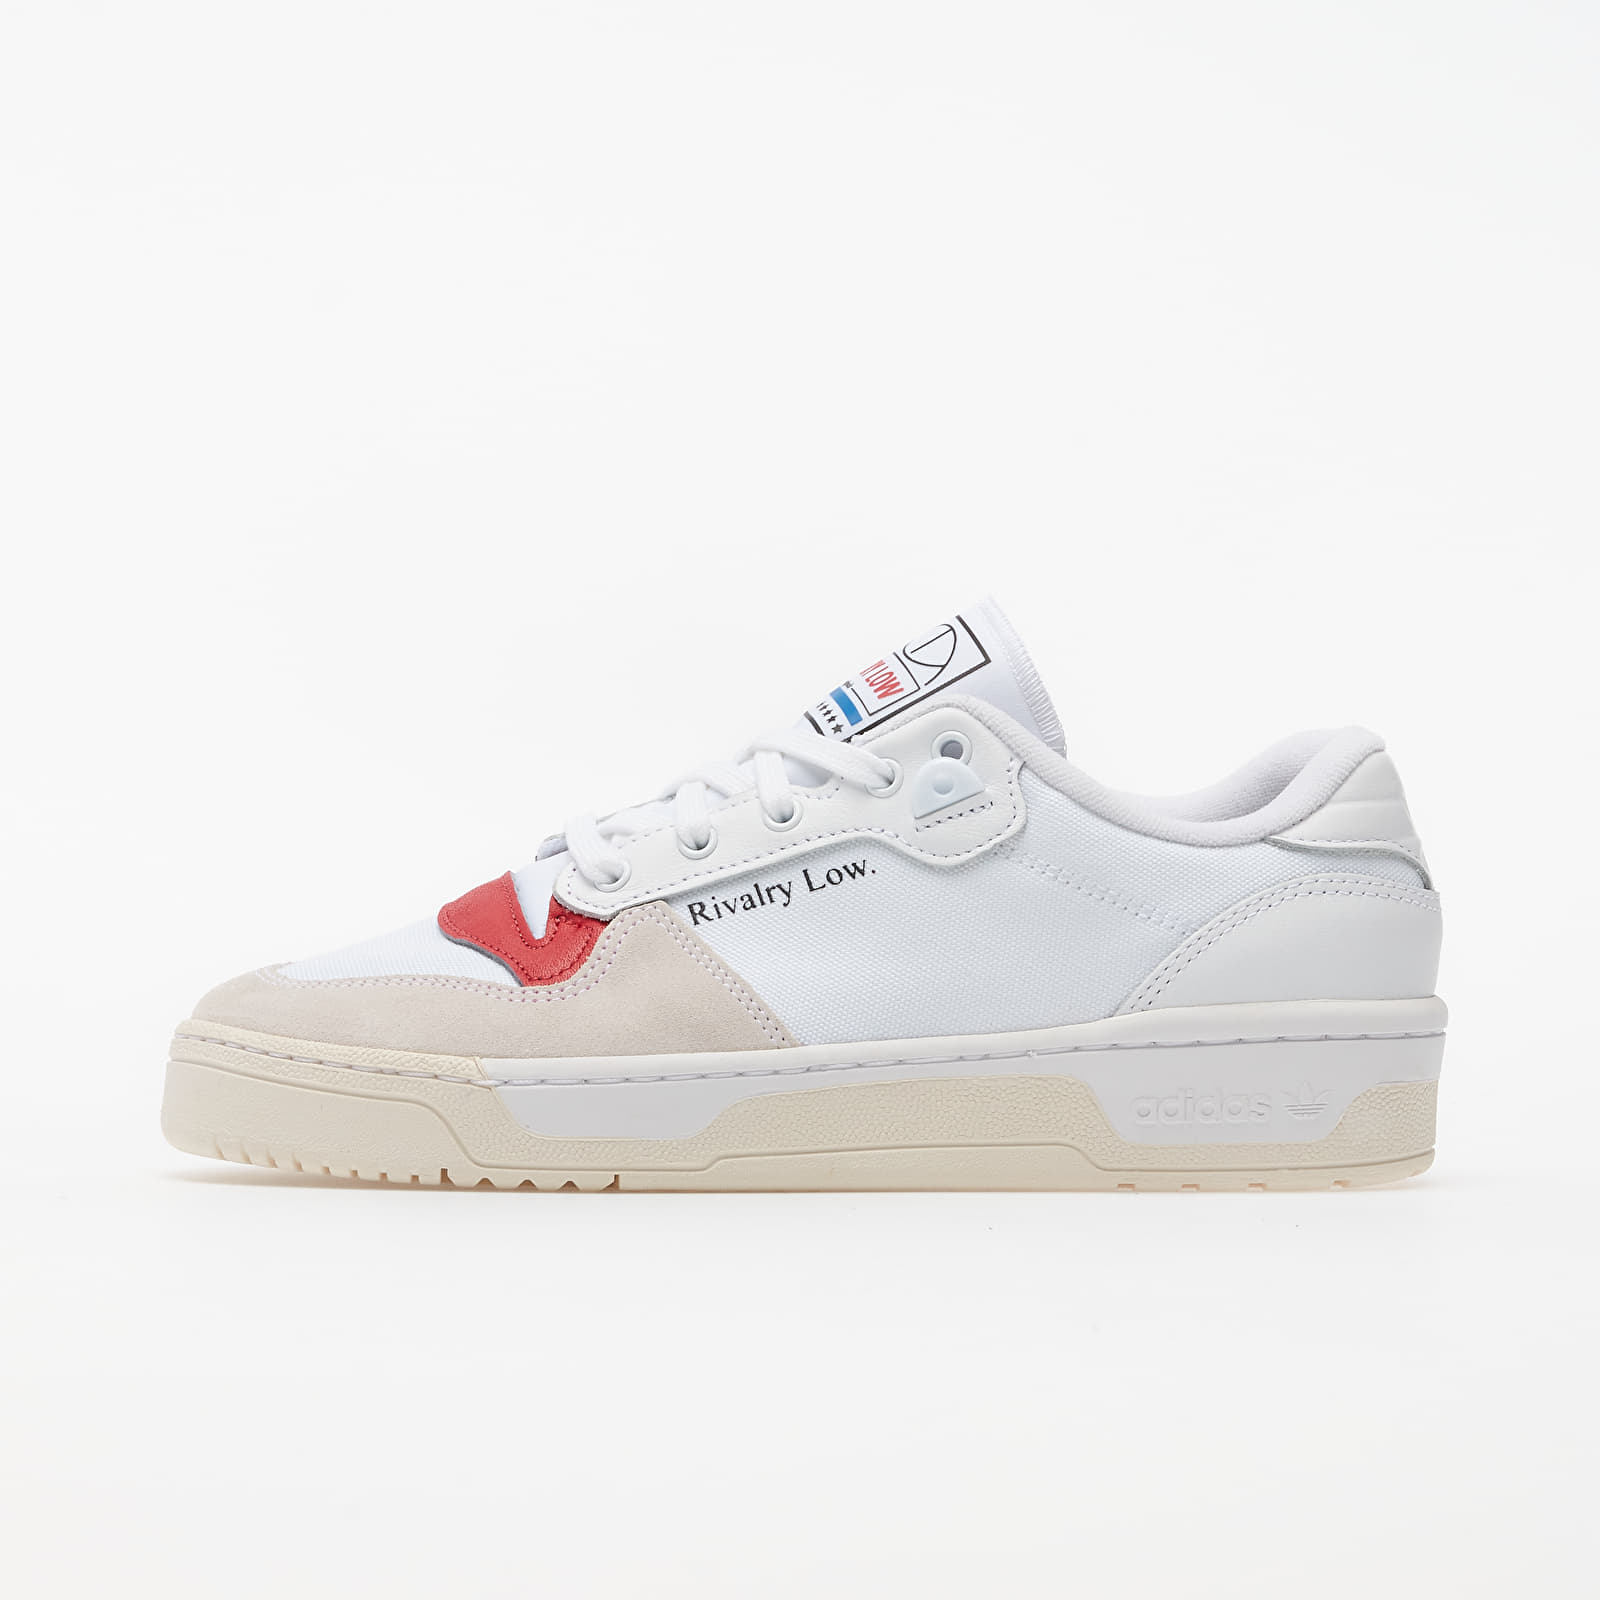 Pánské tenisky a boty adidas Rivalry Low Ftw White/ Core White/ Glow Red